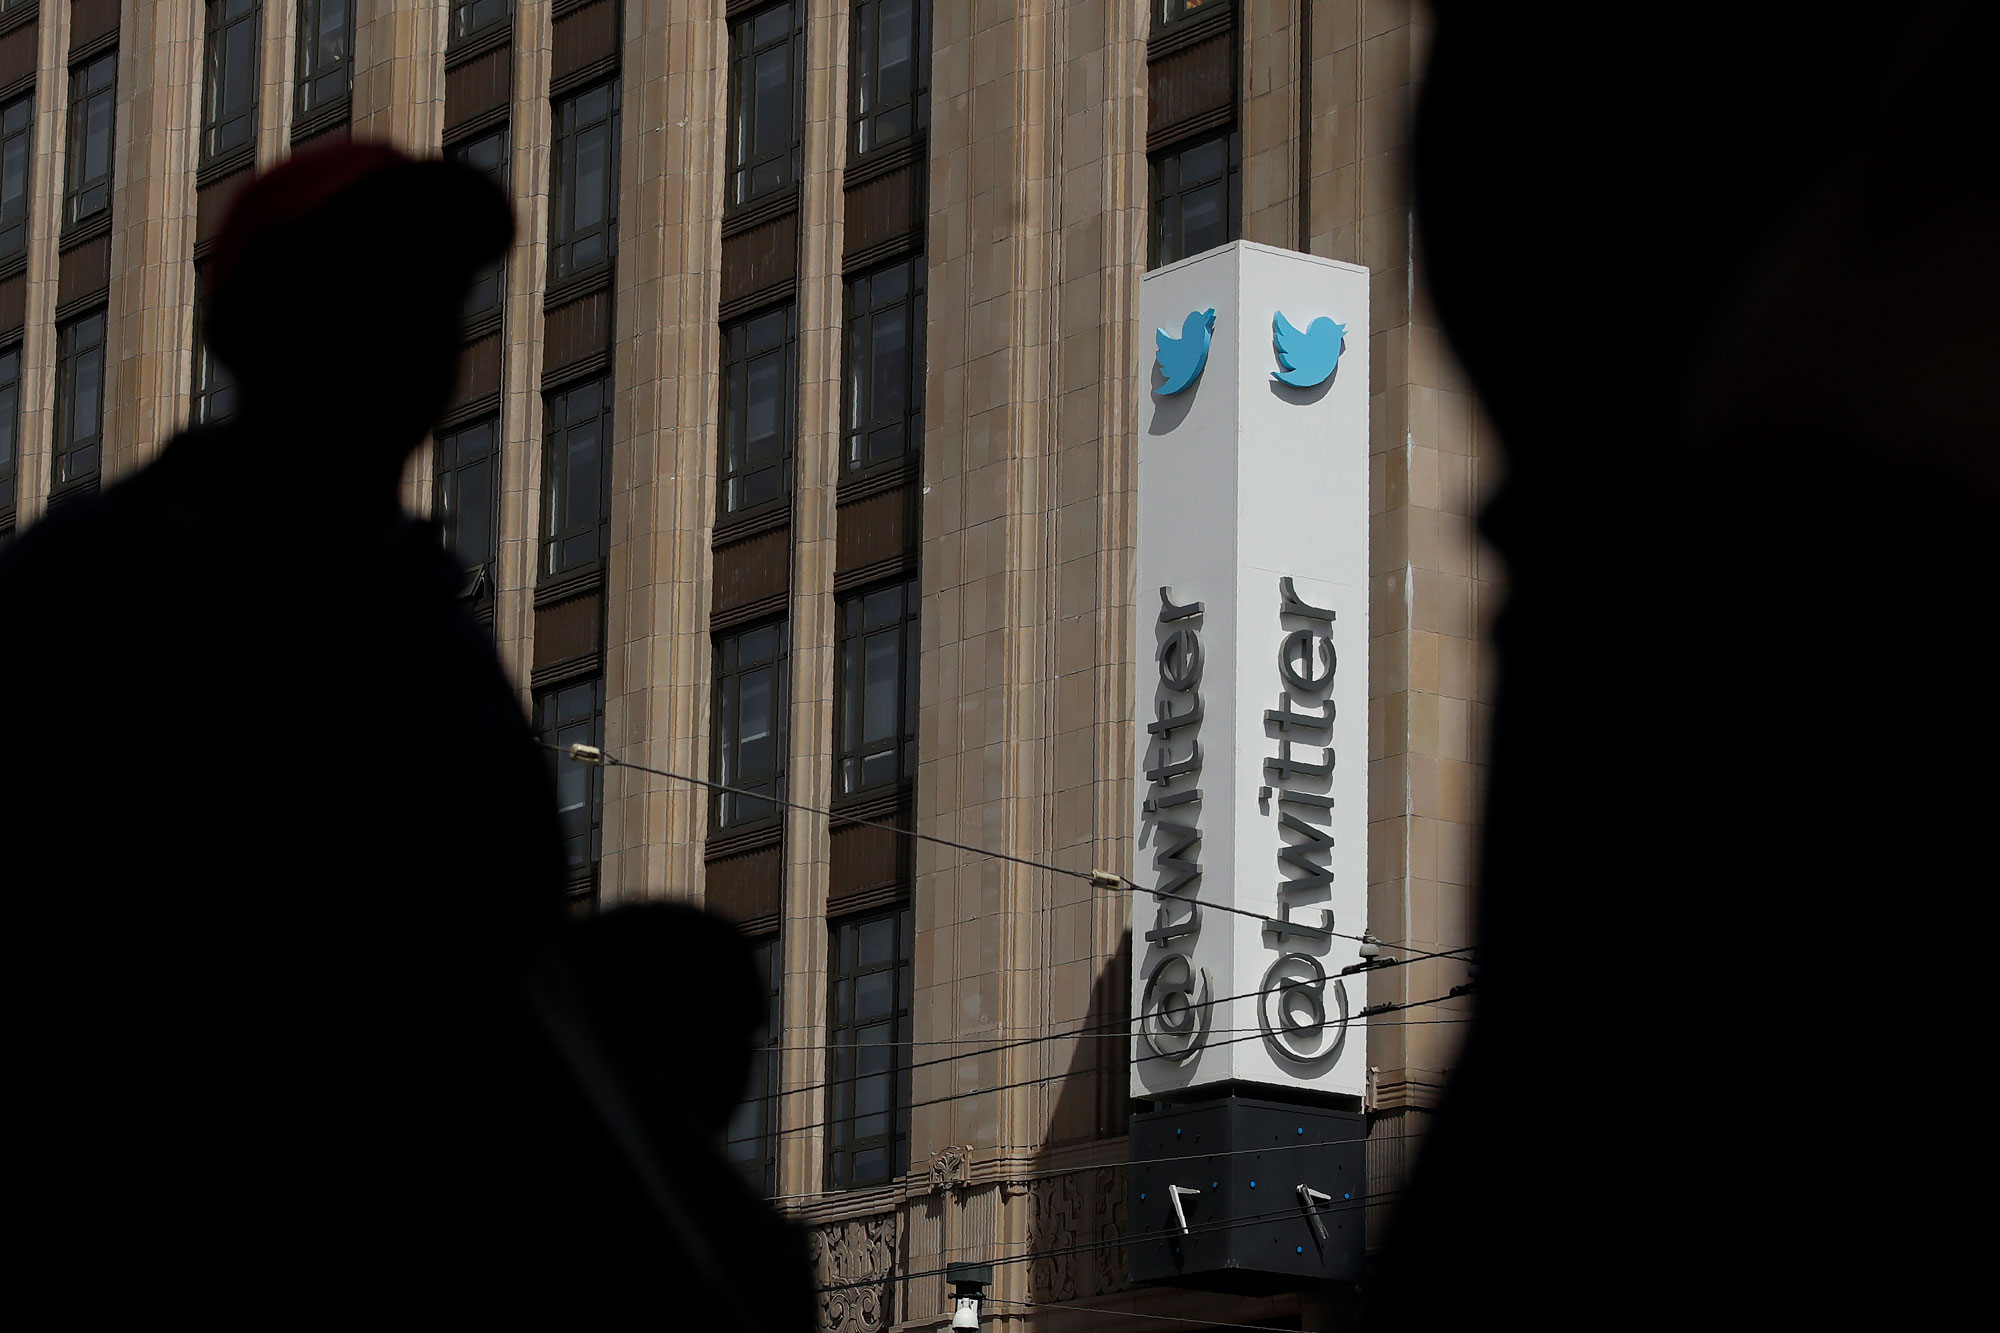 Two former Twitter employees have been charged with spying for Saudi Arabia